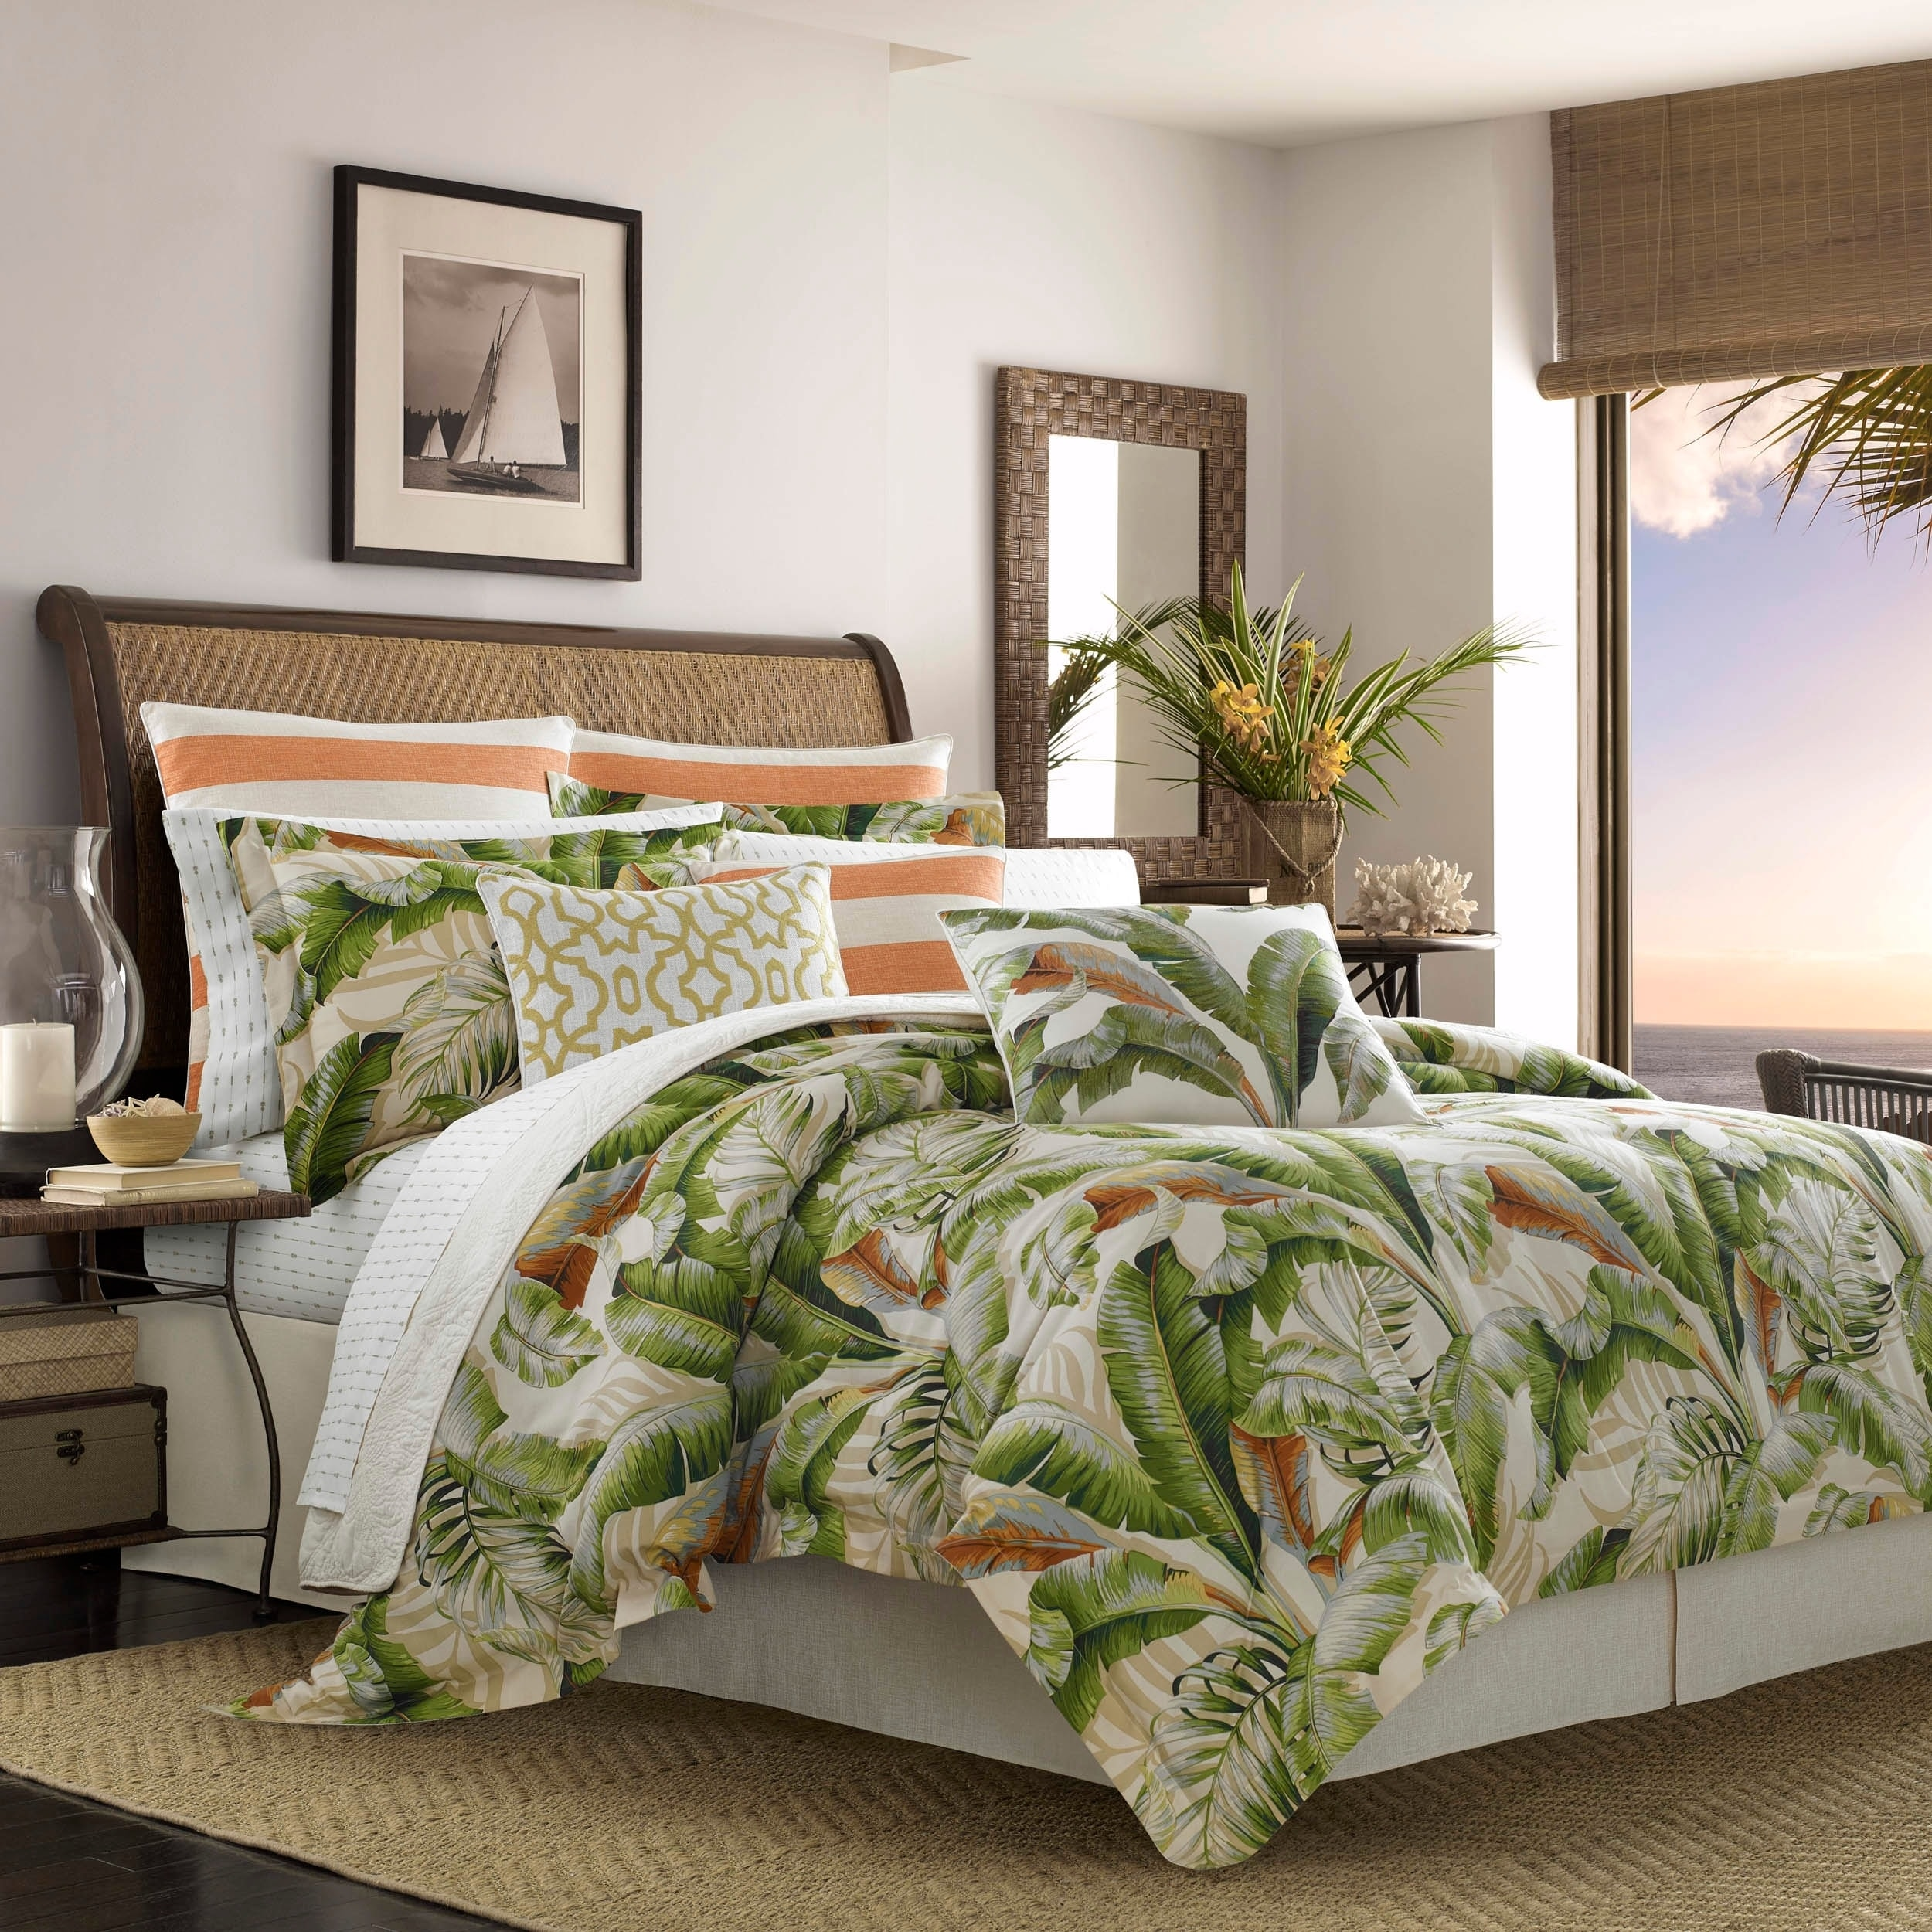 Picture of: Tommy Bahama Palmiers 4 Piece Comforter Set On Sale Overstock 18843885